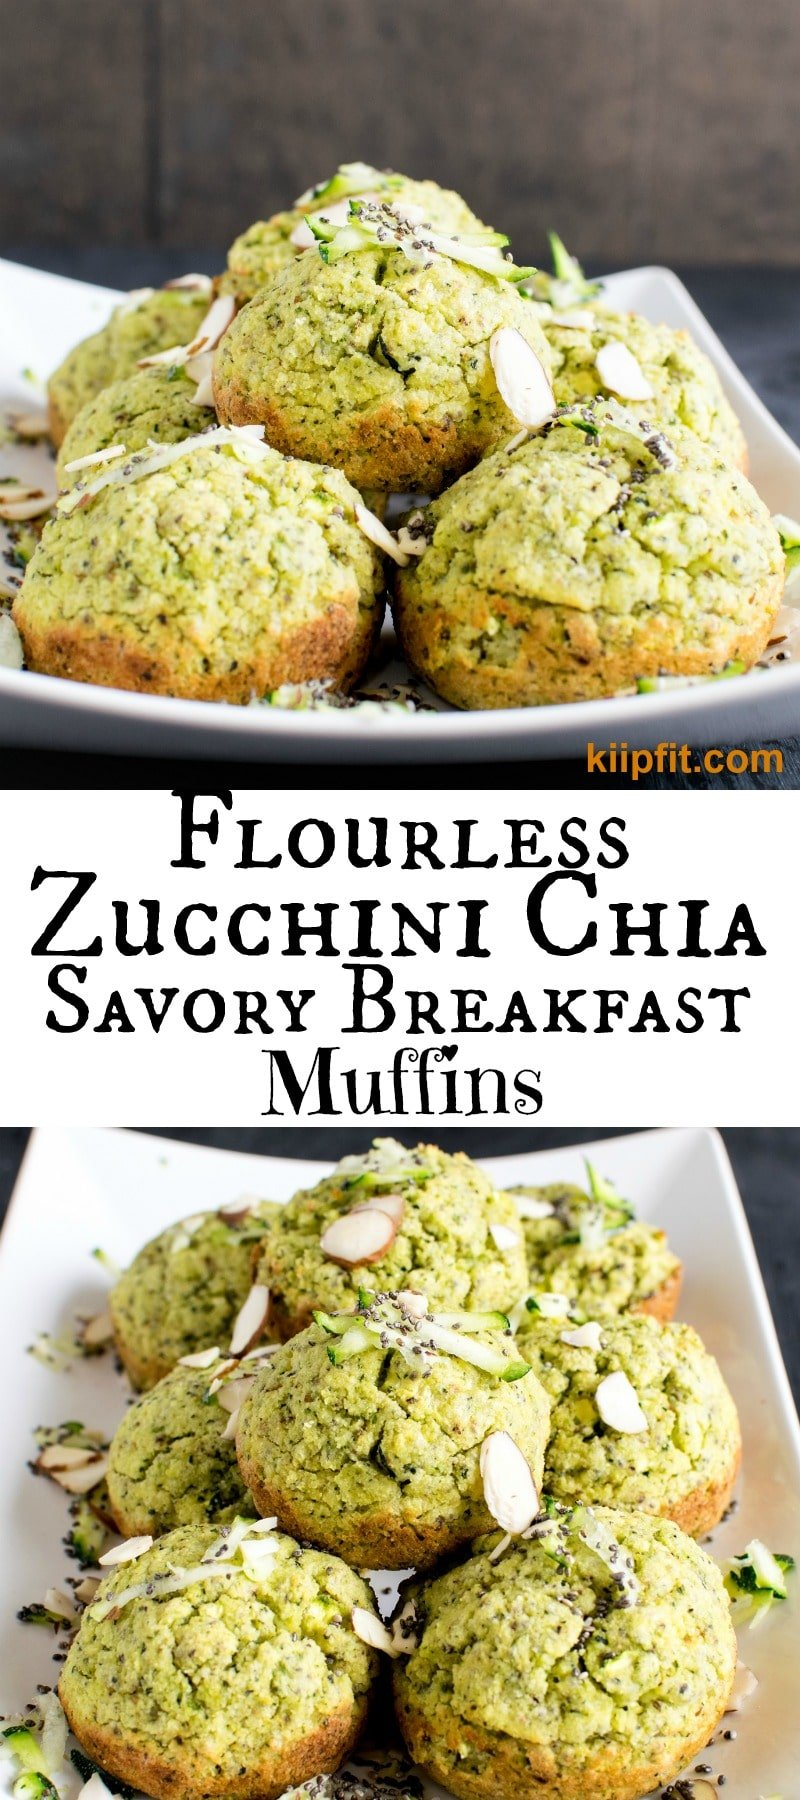 Flourless Zucchini Chia Savory Breakfast Muffins - The green color of the muffins and the aromatic lemon pepper spice blended with fresh zucchini was absolutely mouthwatering. These soft and fluffy melt in mouth savory muffins were a complete delight to our taste buds [ vegan + paleo + gf ] kiipfit.com